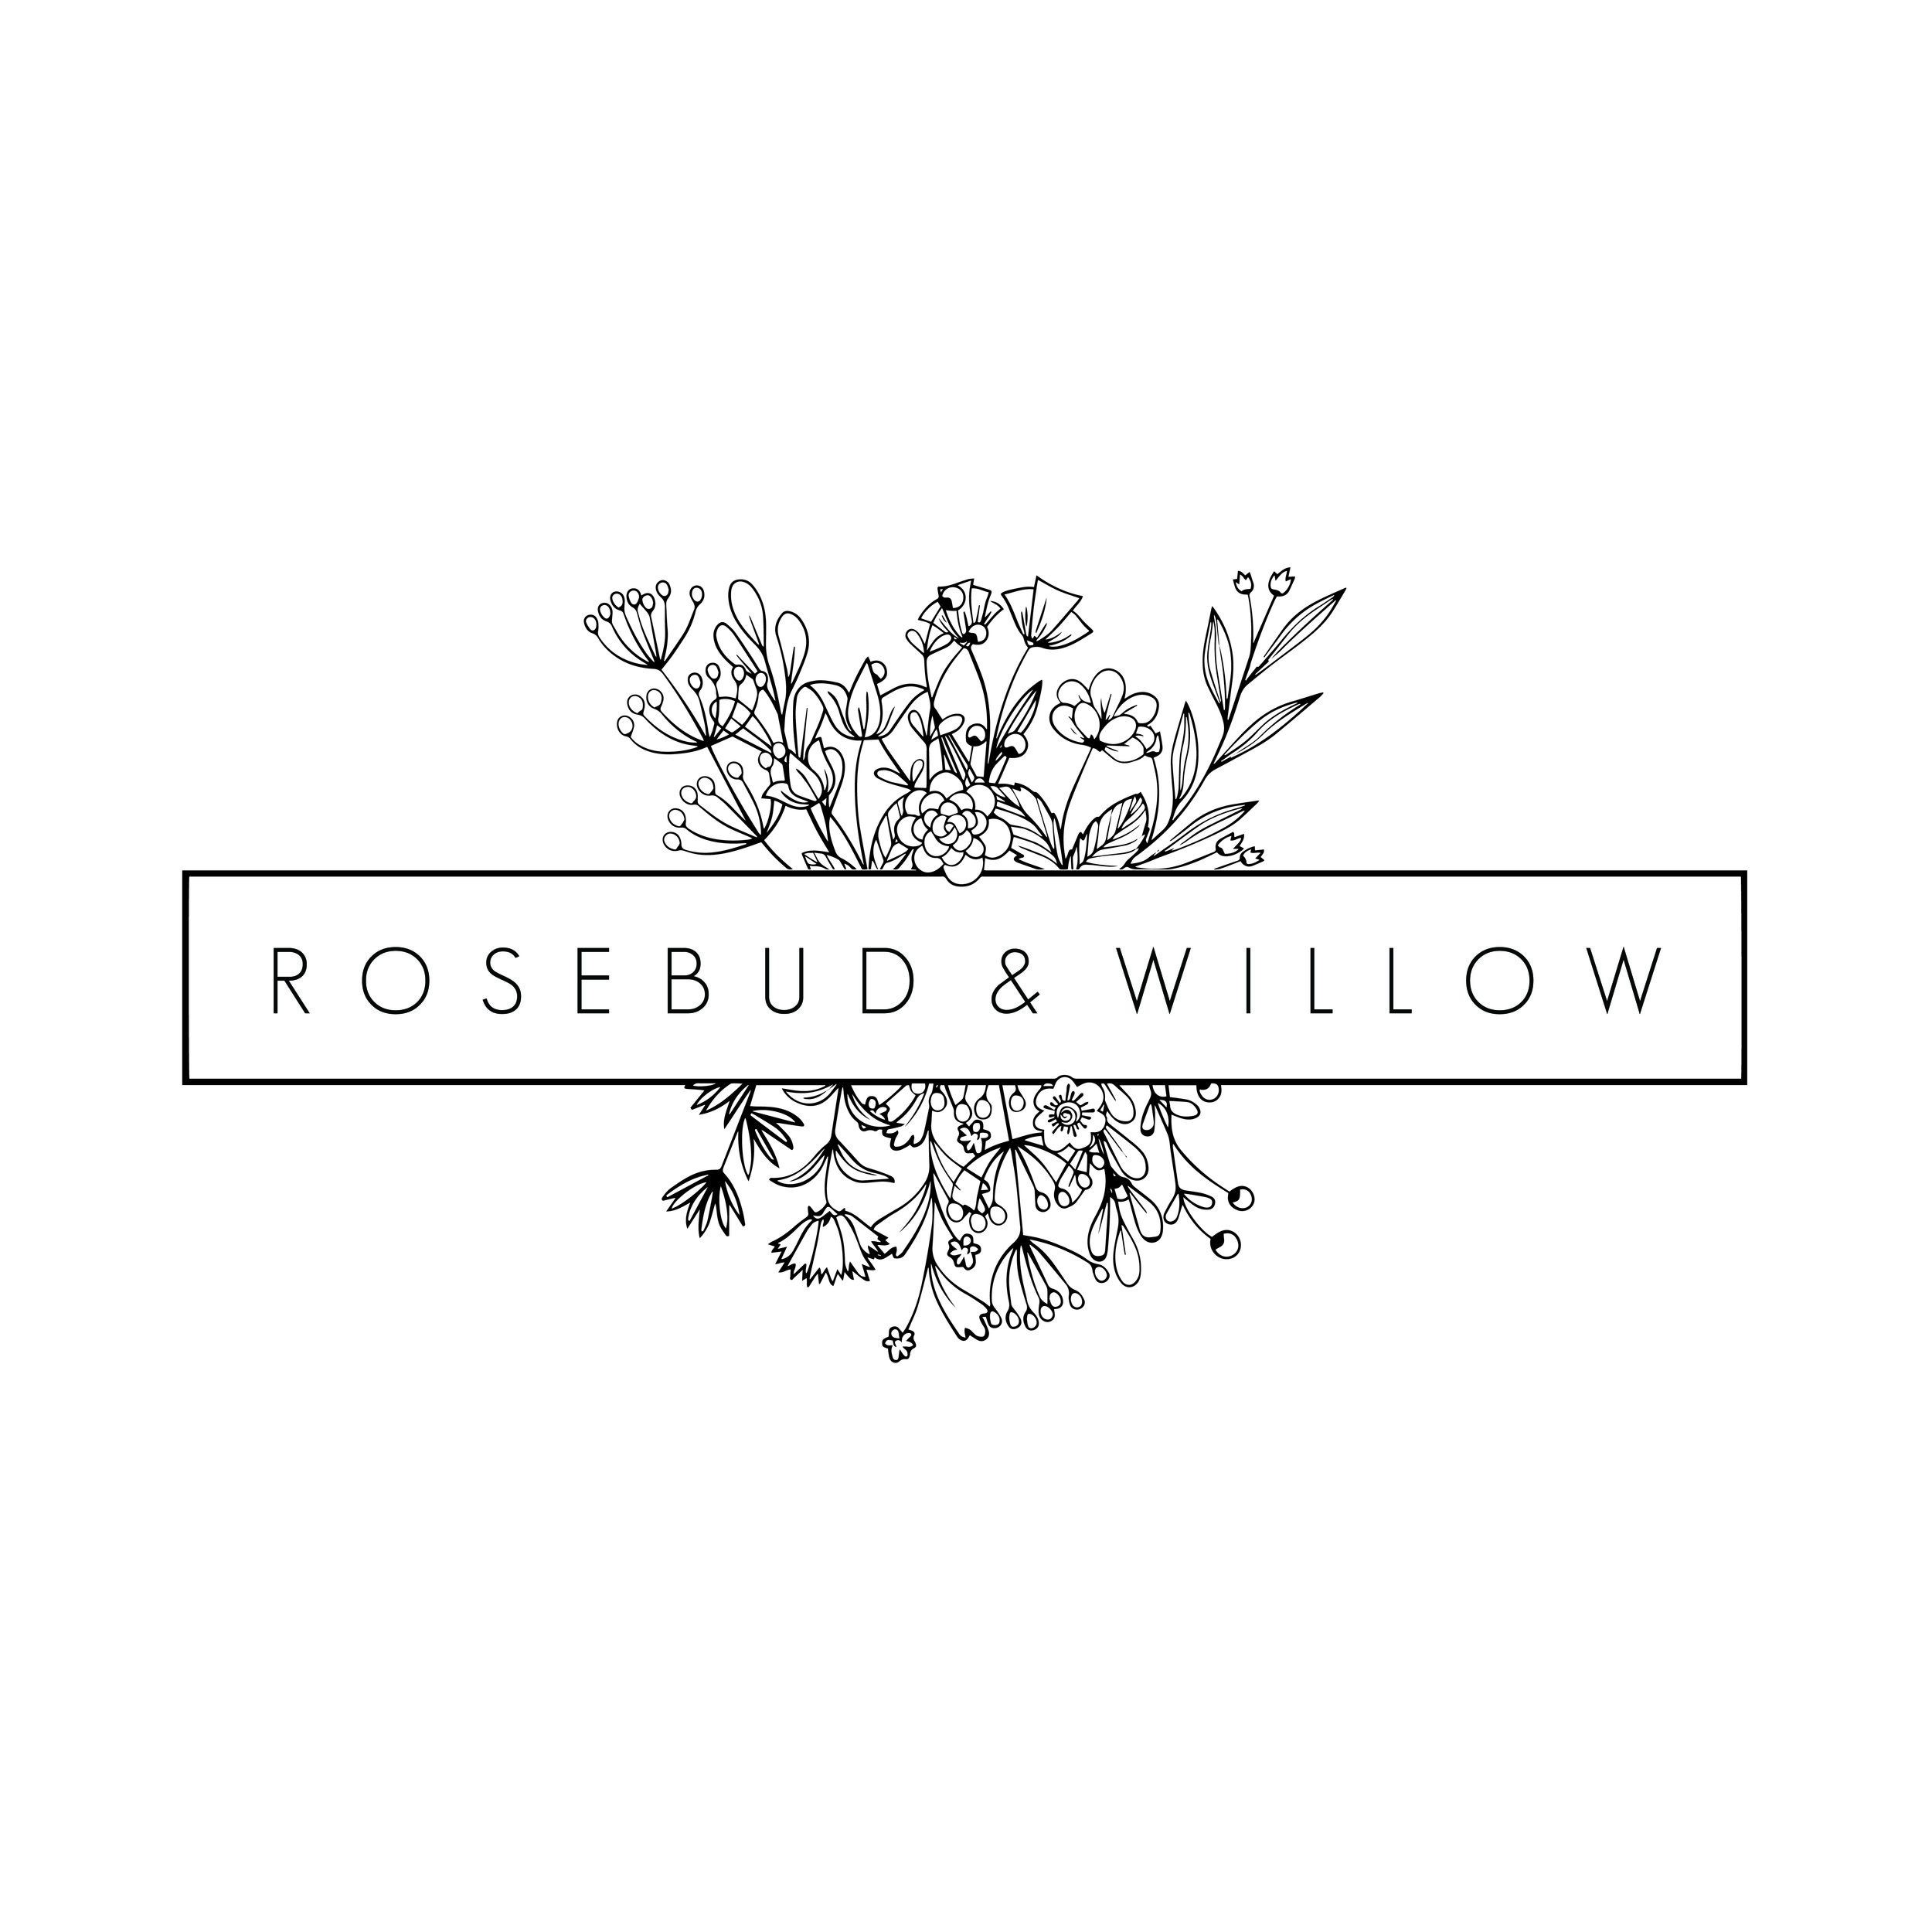 """Rosebud & Willow - """"Tammy has just completed a new logo design for my business which I absolutely love!!! She was fantastic to work with, very accommodating and patient and full of excellent ideas. I would highly recommend her and her services. Thanks so much!!"""""""